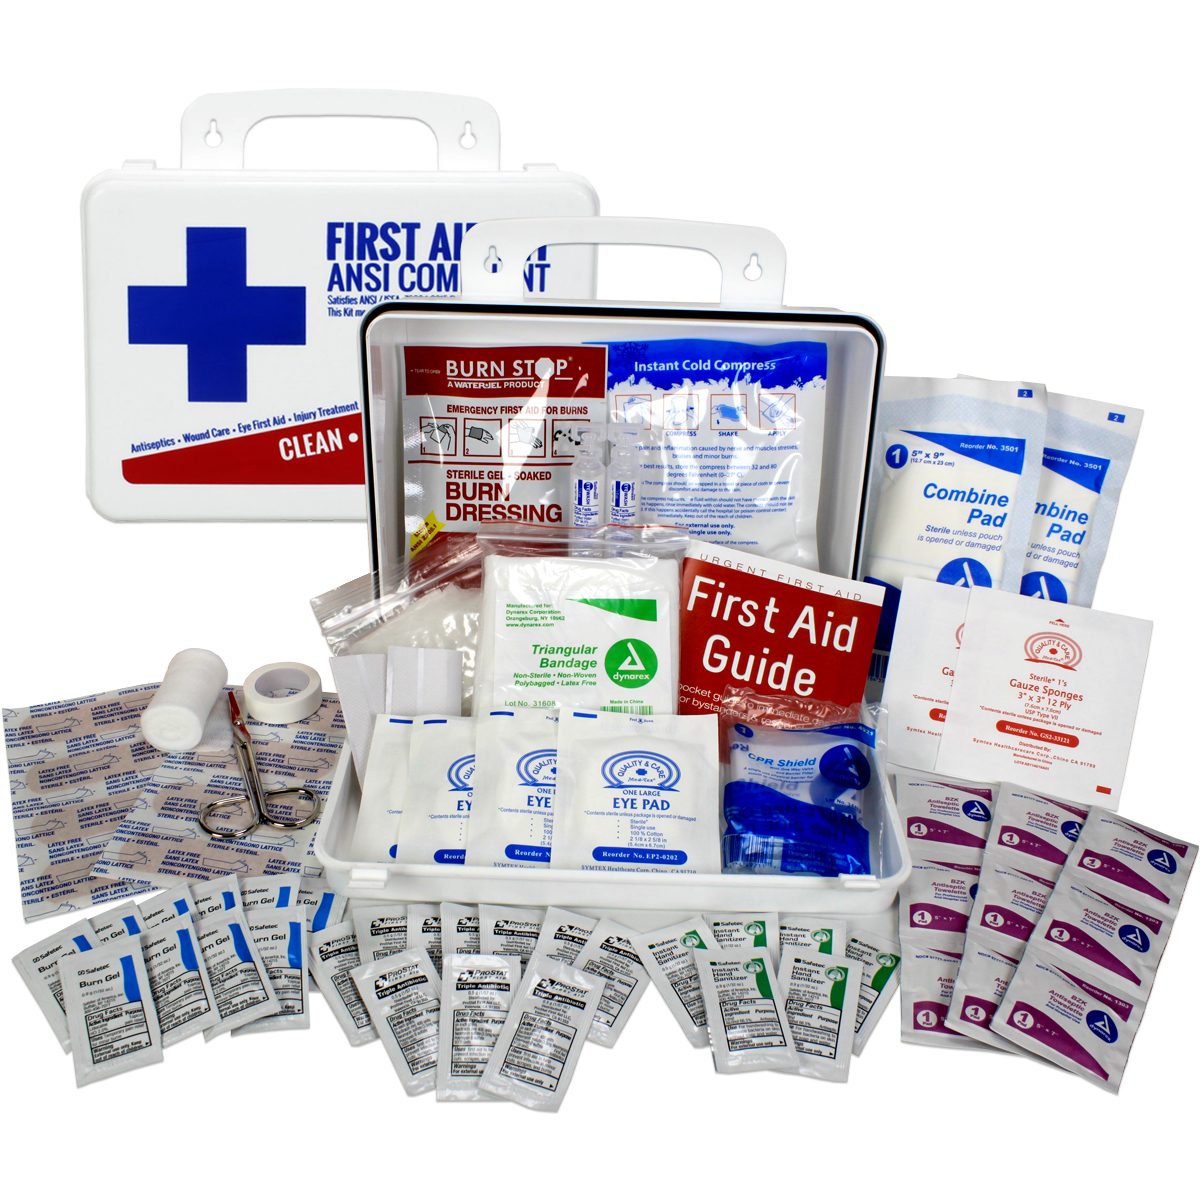 OSHA & ANSI First Aid Kit, 25 Person, 74 Pieces, Indoor/Outdoor Emergency Kit for Office, Home or Car, ANSI 2015 Class A/Types I & II, Gasketed for weather and moisture resistance, Made in USA